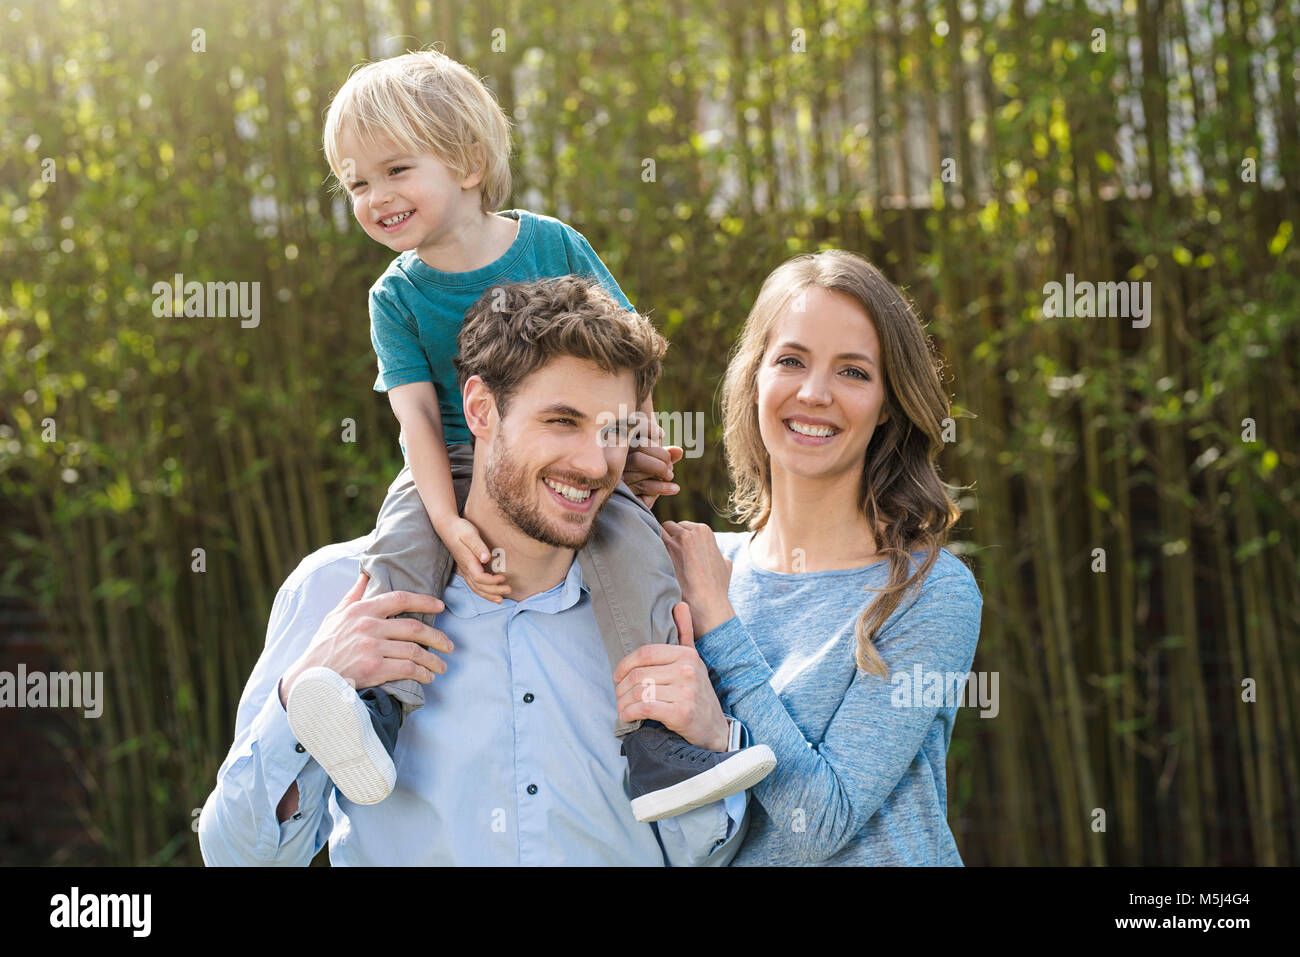 Portrait of happy family in garden in front of bamboo plants - Stock Image